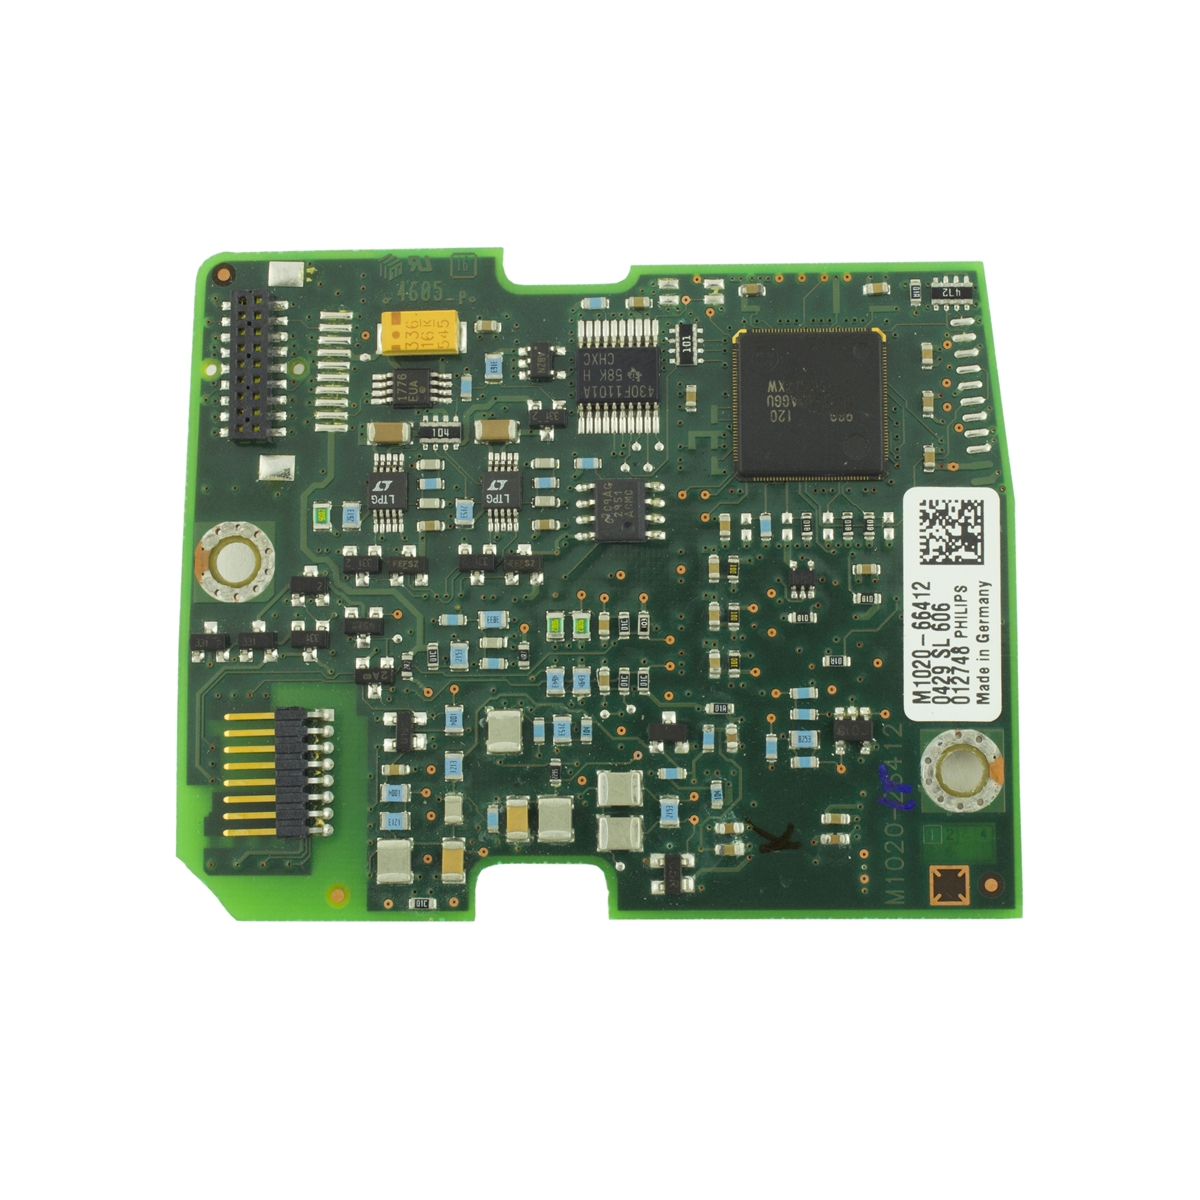 Philips IntelliVue M2601B Telemetry Transmitter S01 S02 S03 ECG System Circuit Board PC Assembly